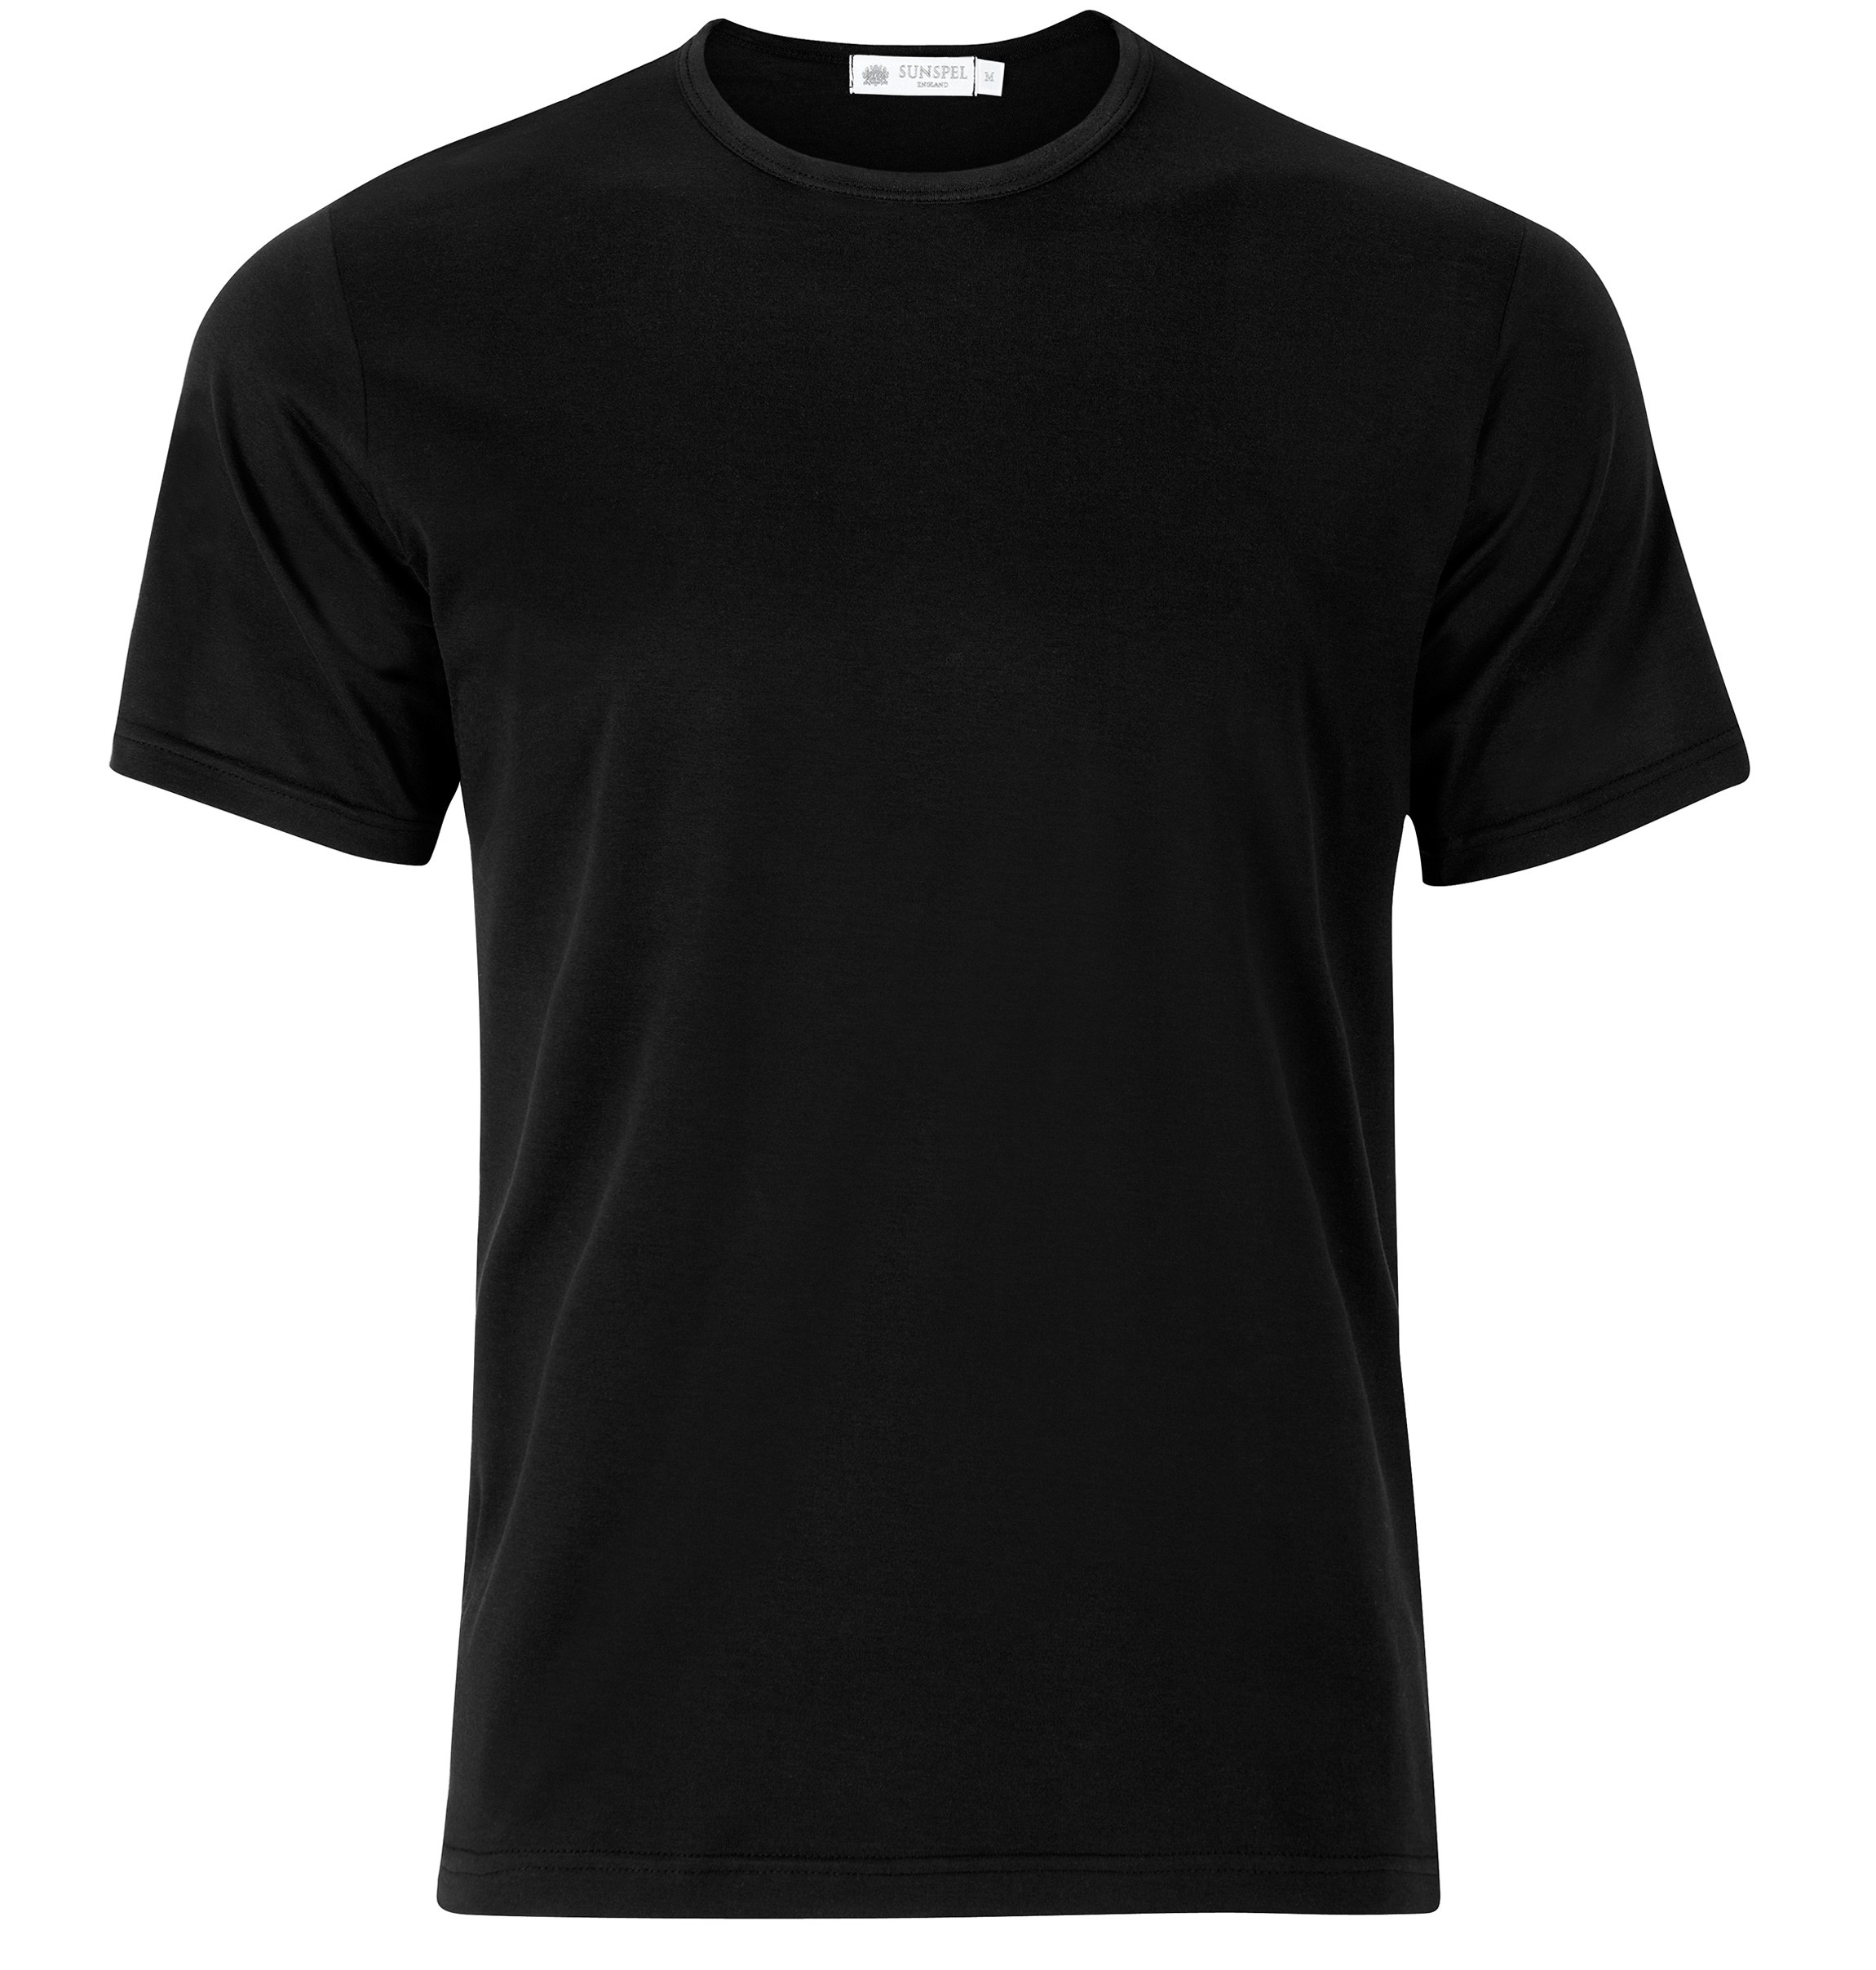 Black Shirts menu0027s superfine cotton t-shirt in black FGOMNNR